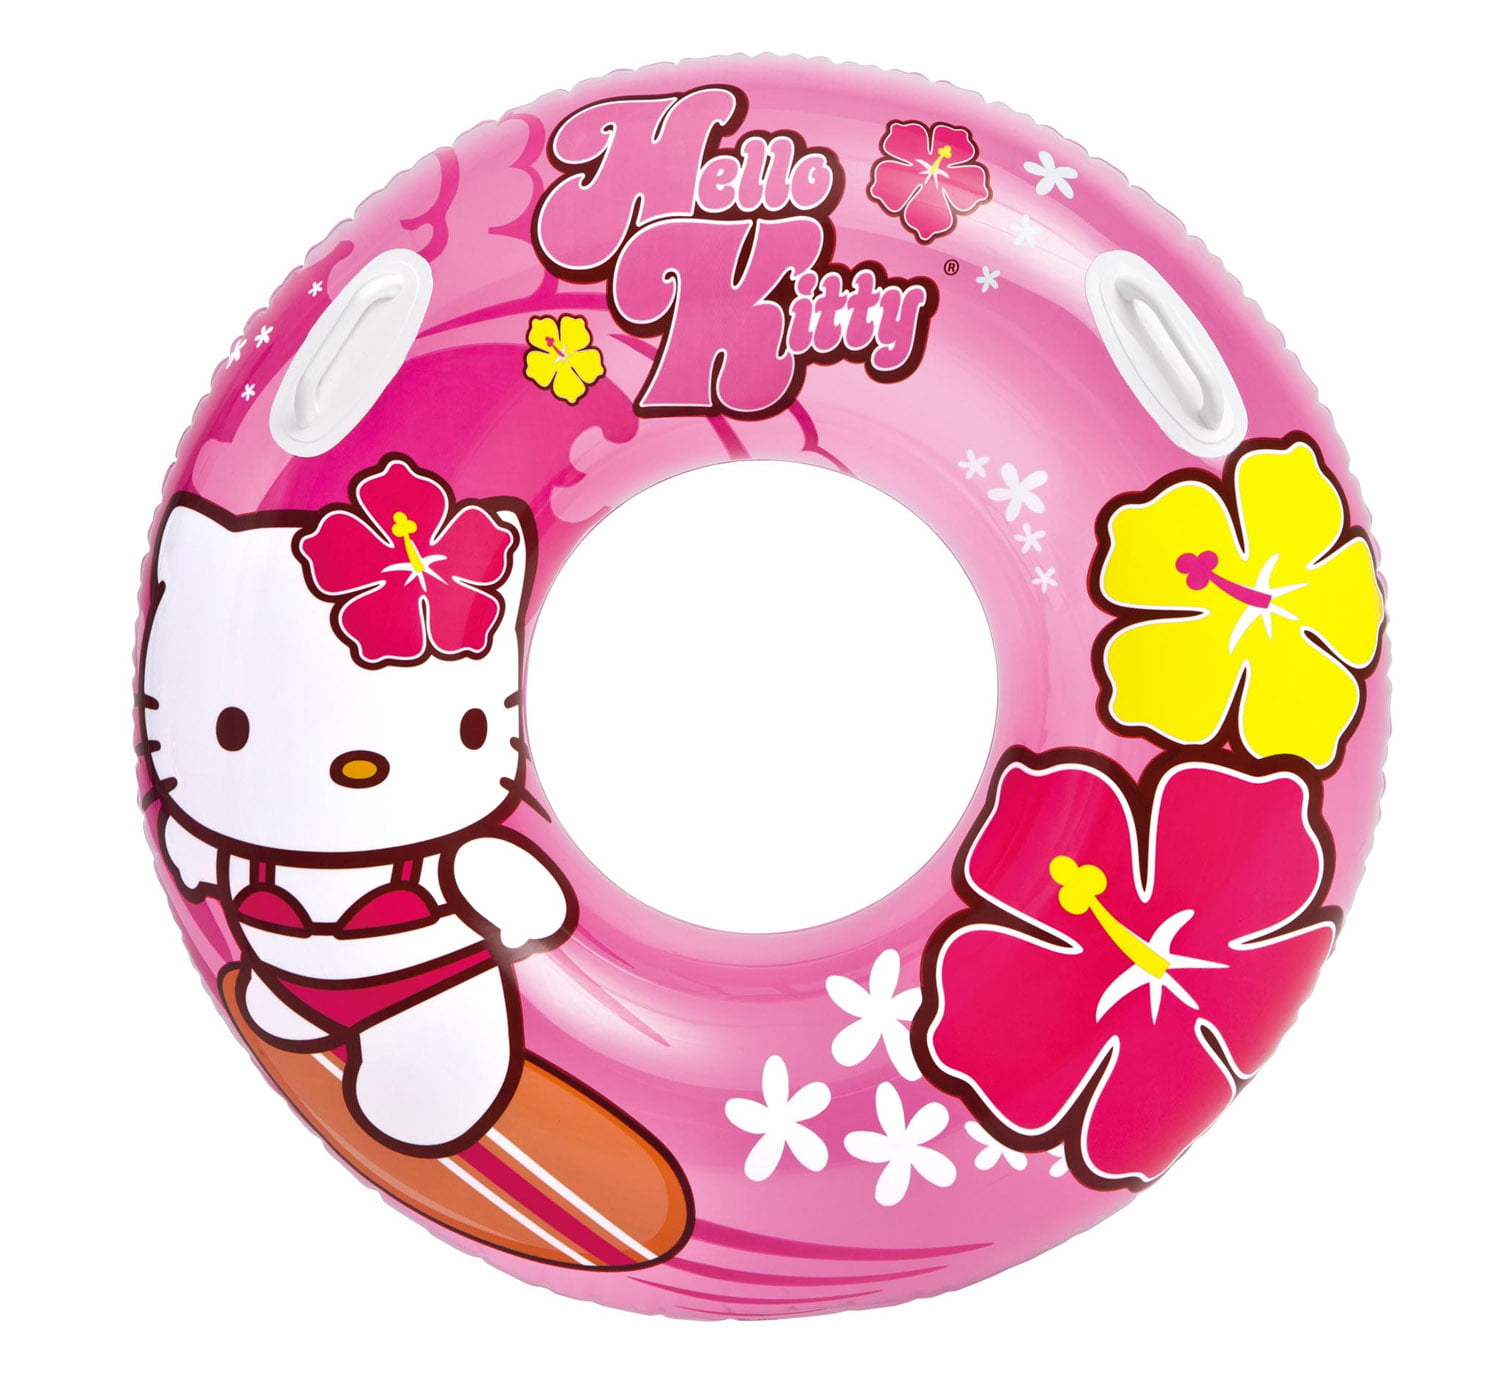 Intex Hello Kitty Inflatable Kids Floating Tube Pool Raft Pink | 58269EP by Intex